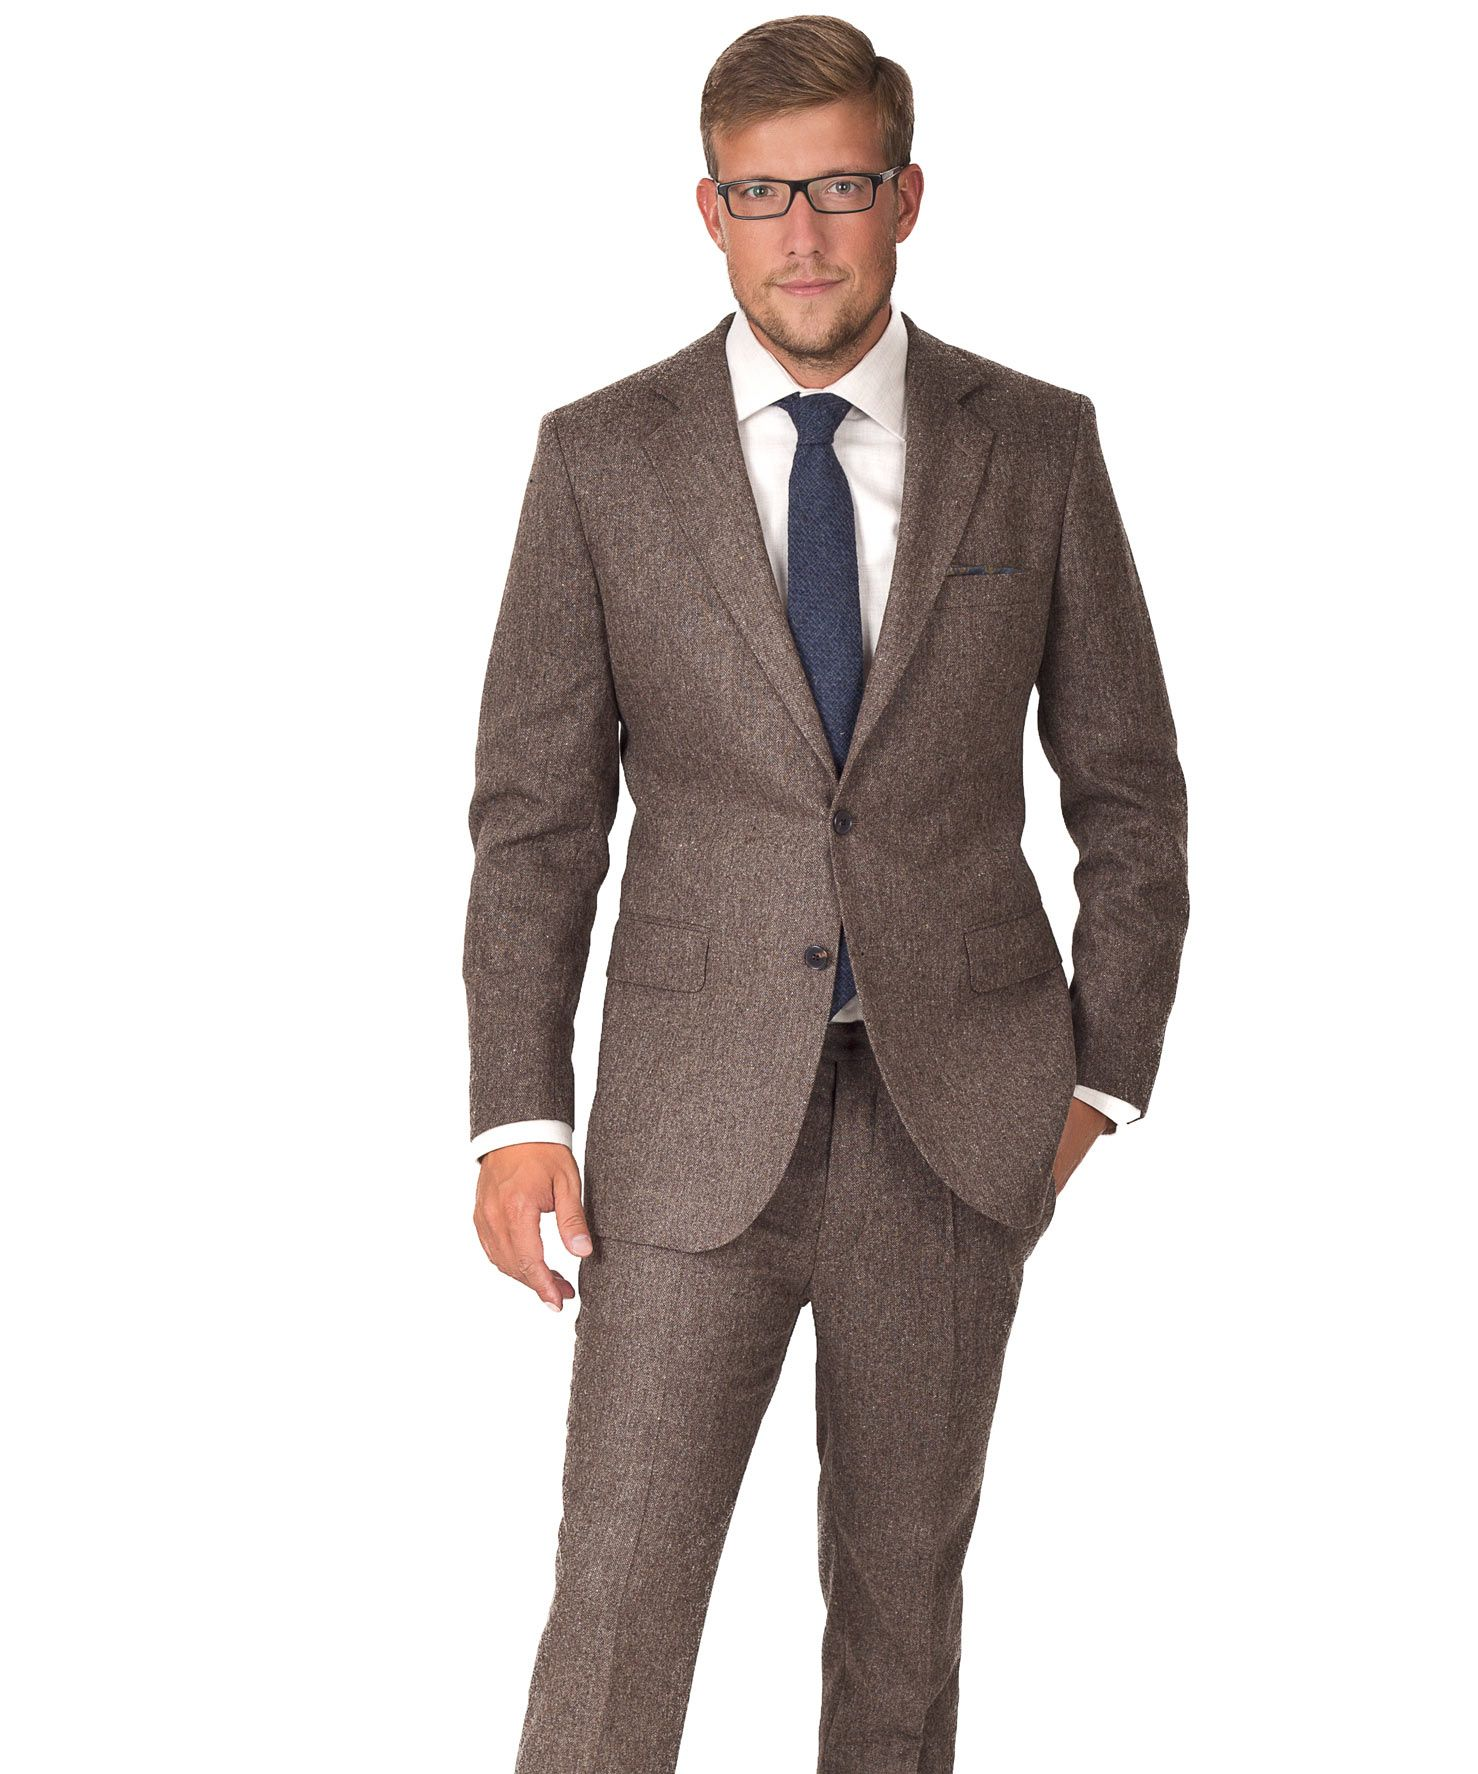 a00d2806435e J.Crew - $360 Ludlow suit jacket with double vent in English tweed. Great  for non traditional wedding. | Wedding ideas | Suits, Jackets, Suit jacket